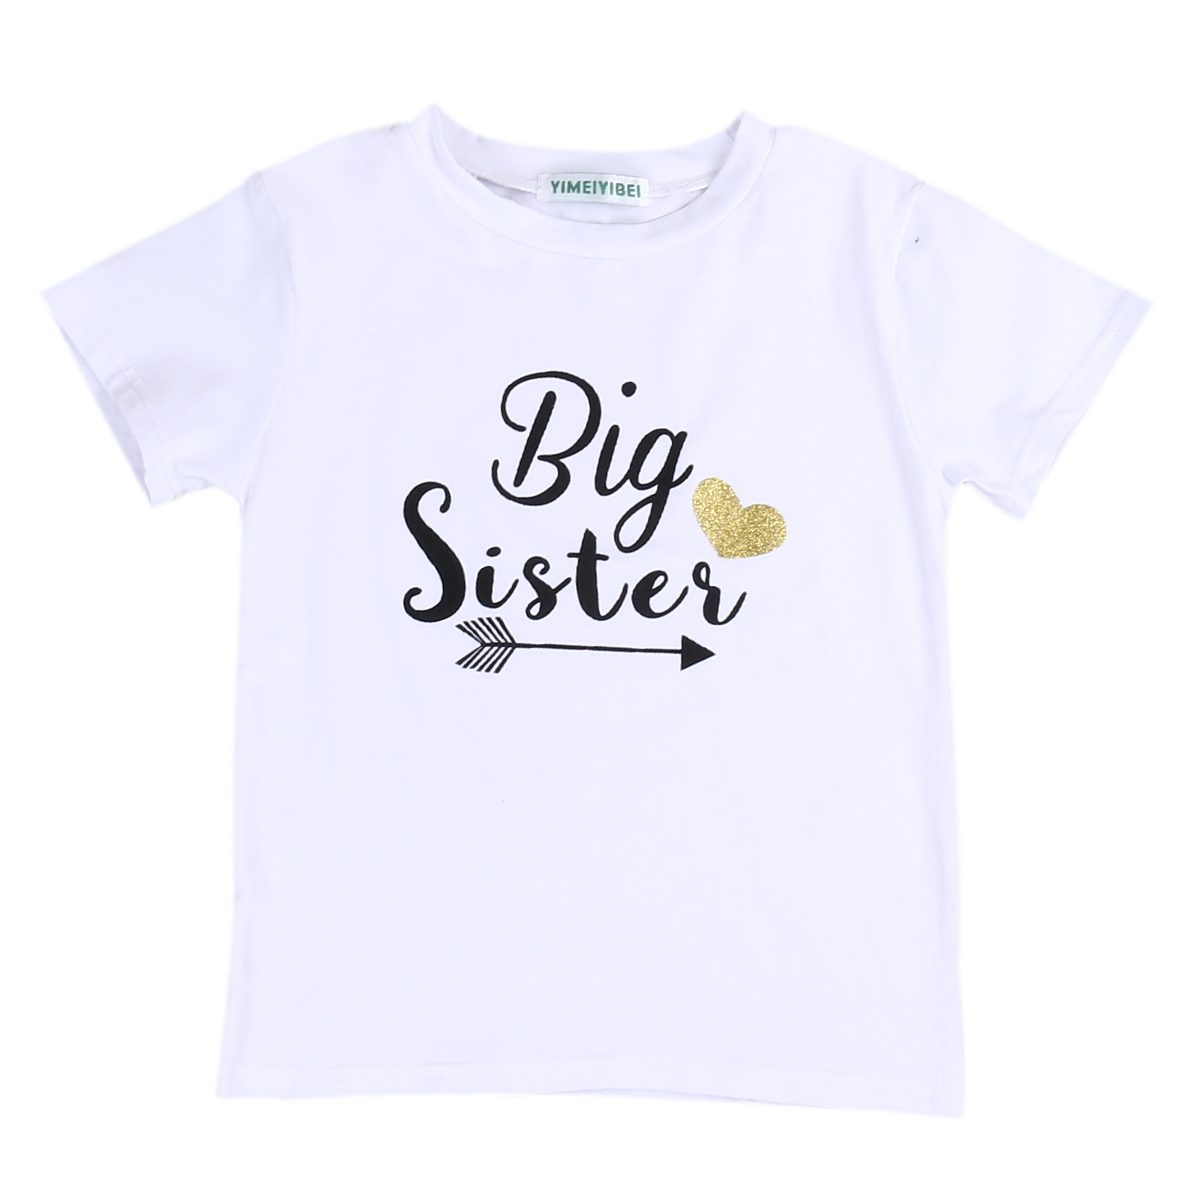 2017 New Cute Fashion Toddler Kids Baby Clothes Big Sister Short Sleeve Cotton T shirt font